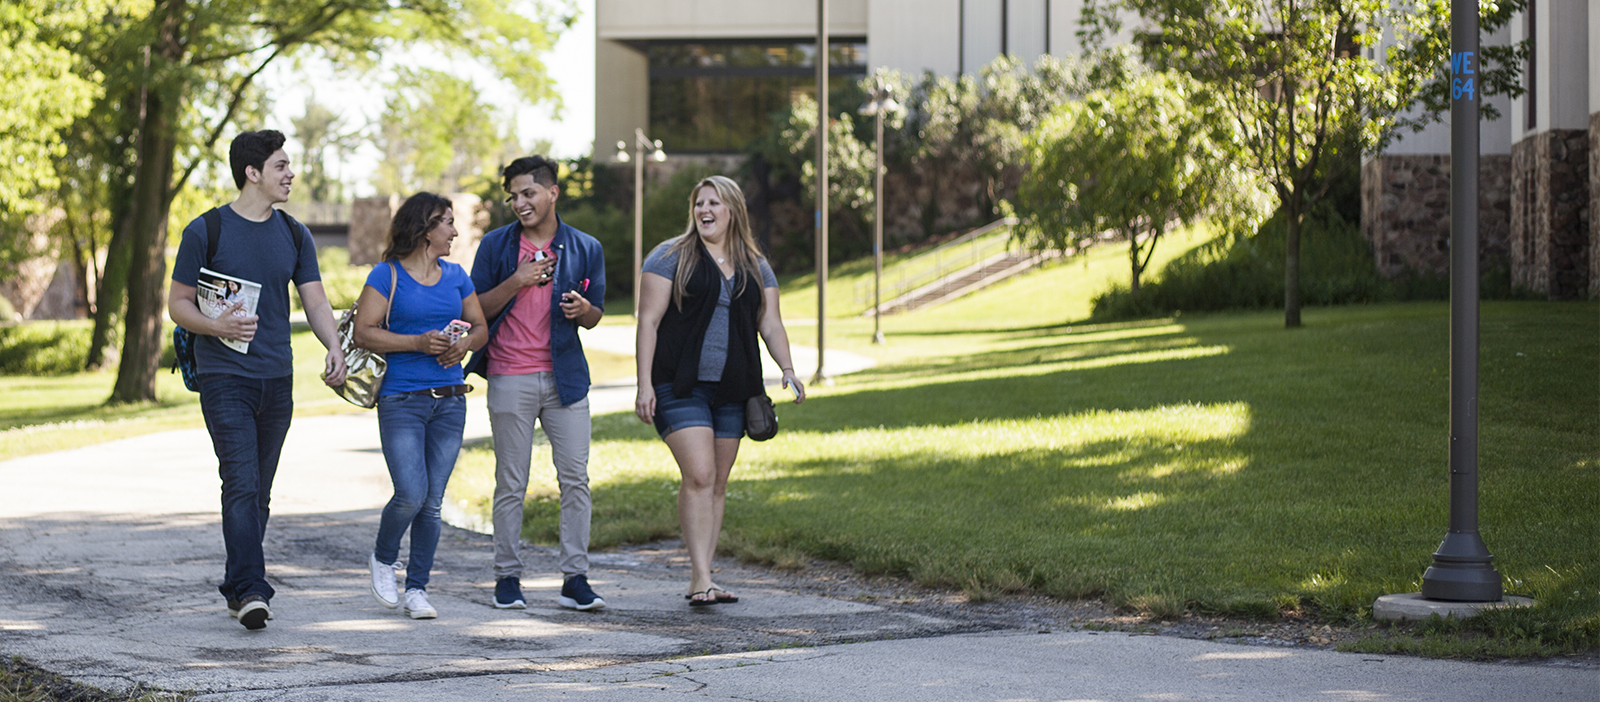 We would love to have you come out for a tour of our beautiful campus and facilities! Contact our admissions office for a tour or attend one of our Explore RVC events. Can't make it to campus? Try our virtual tour!